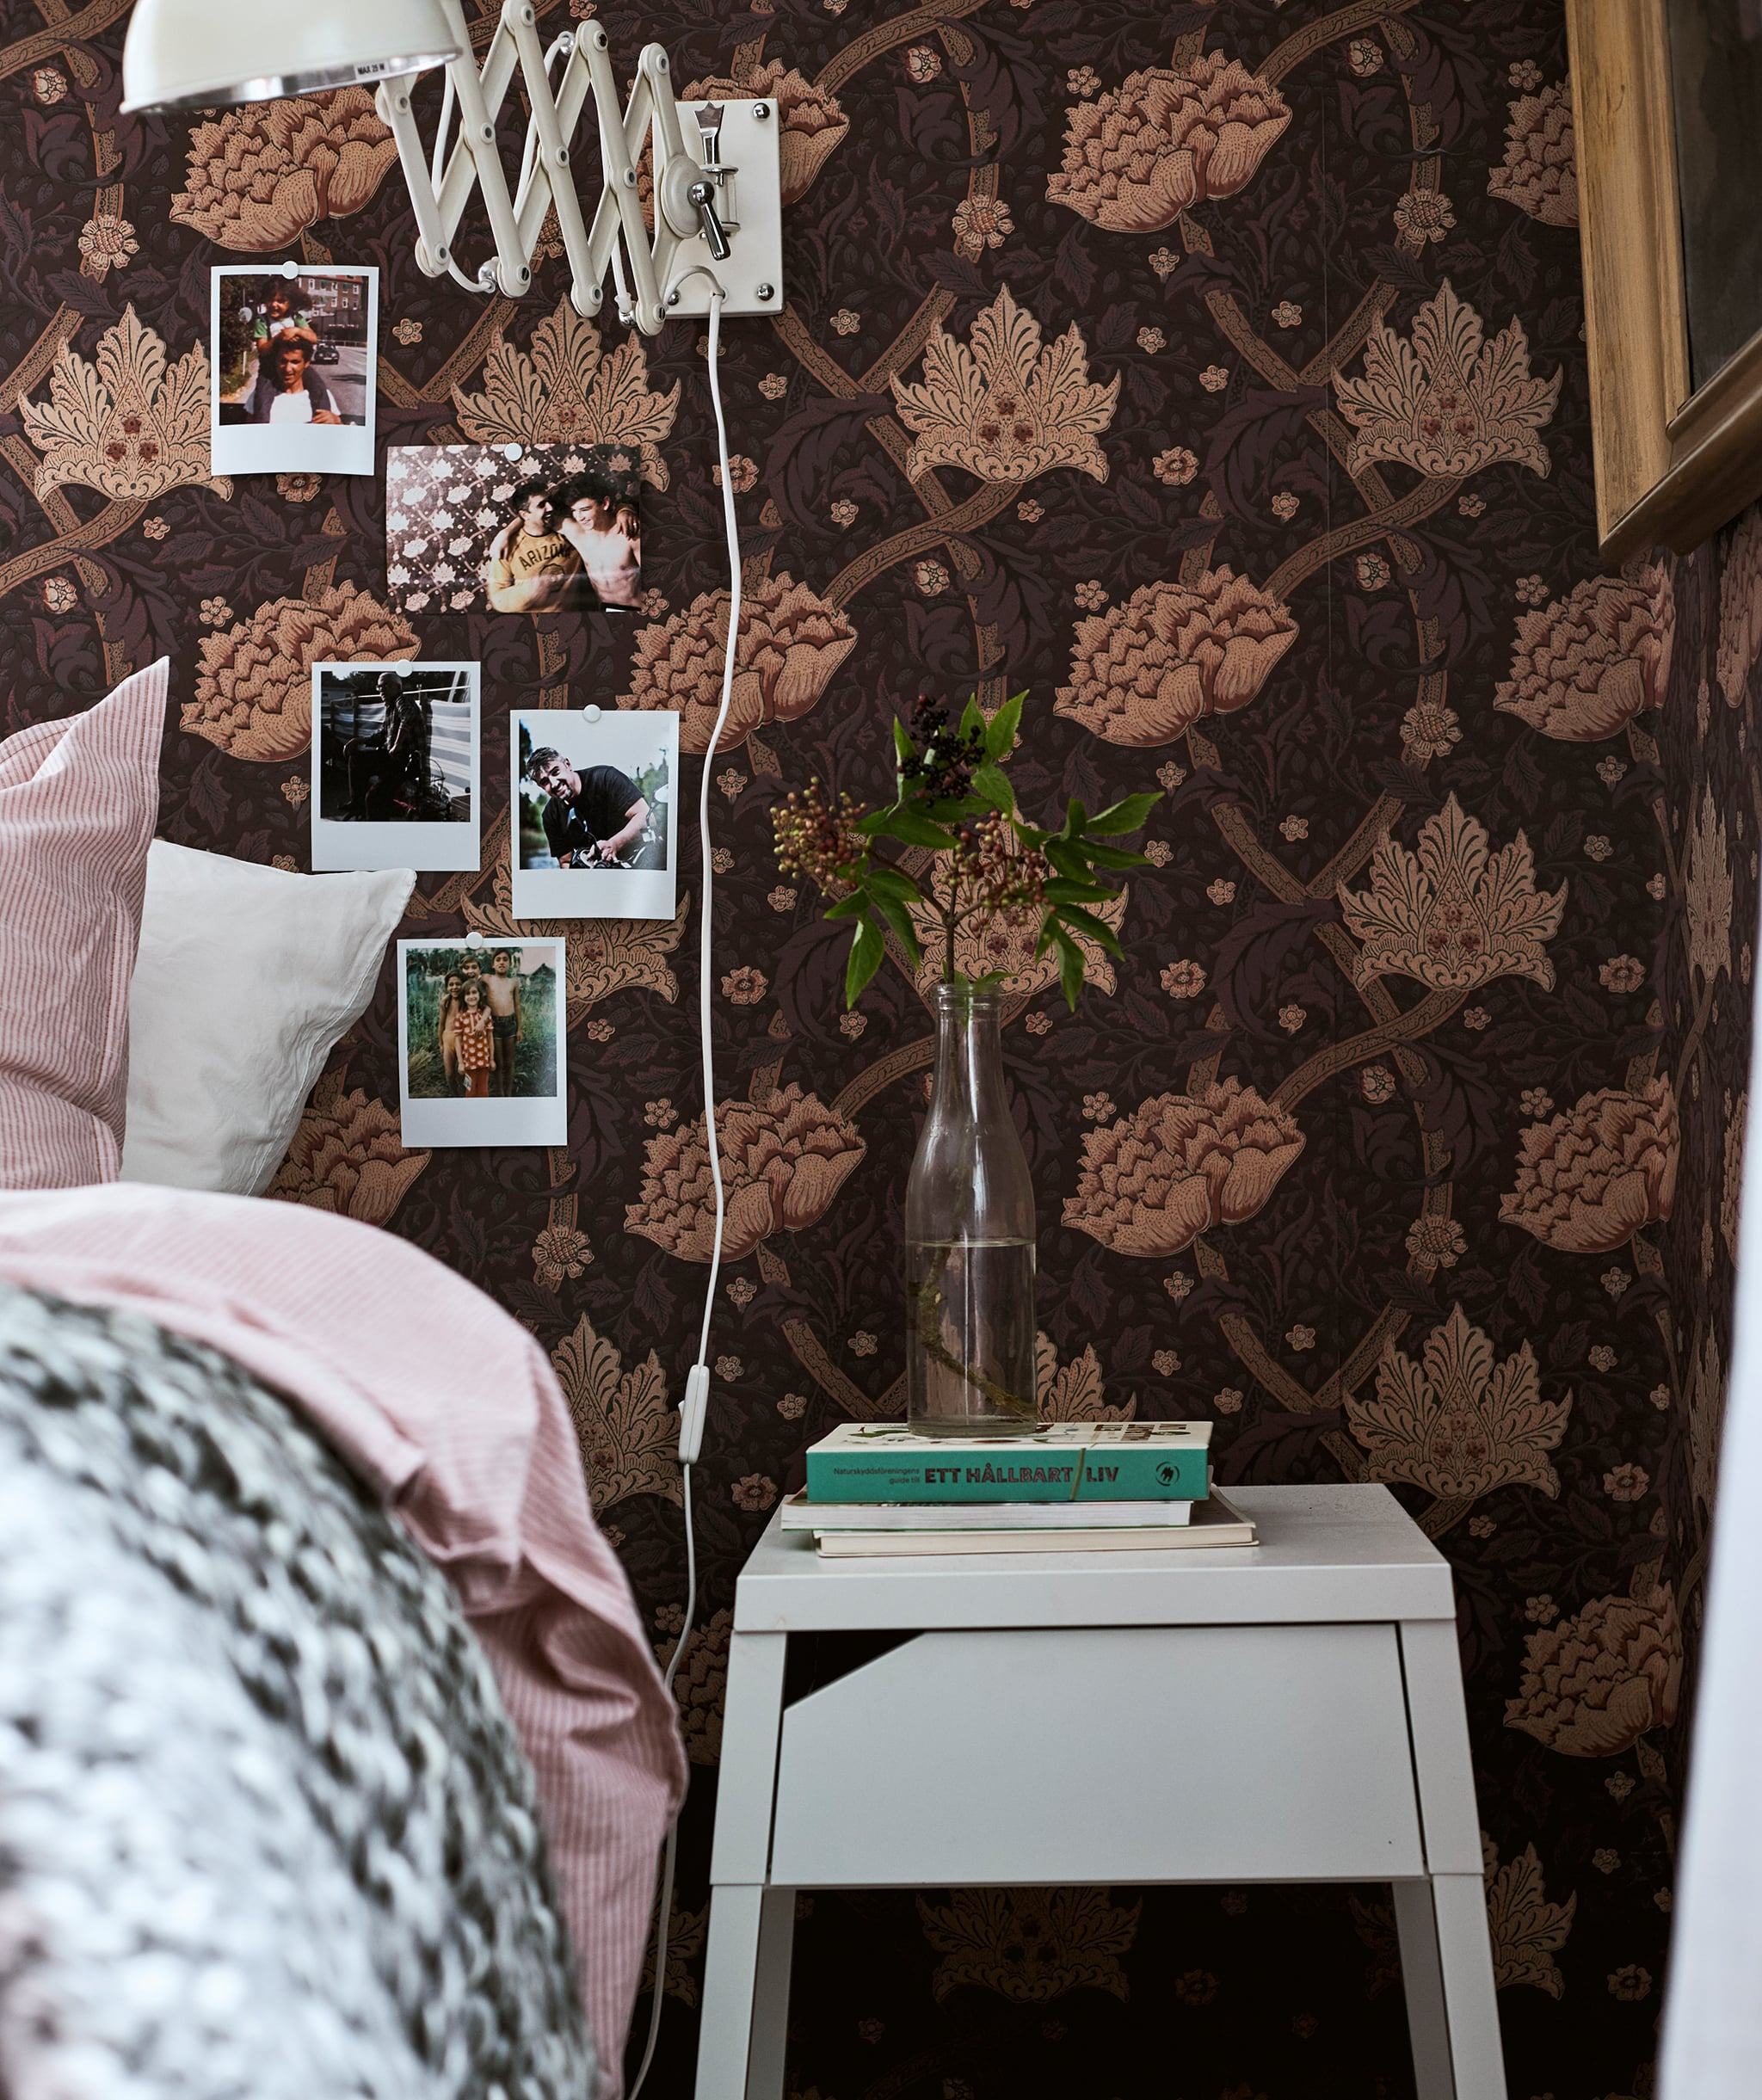 A bed with pink bedding next to a white bedside table with books and a stem in a vase, Polaroids are on the papered wall.